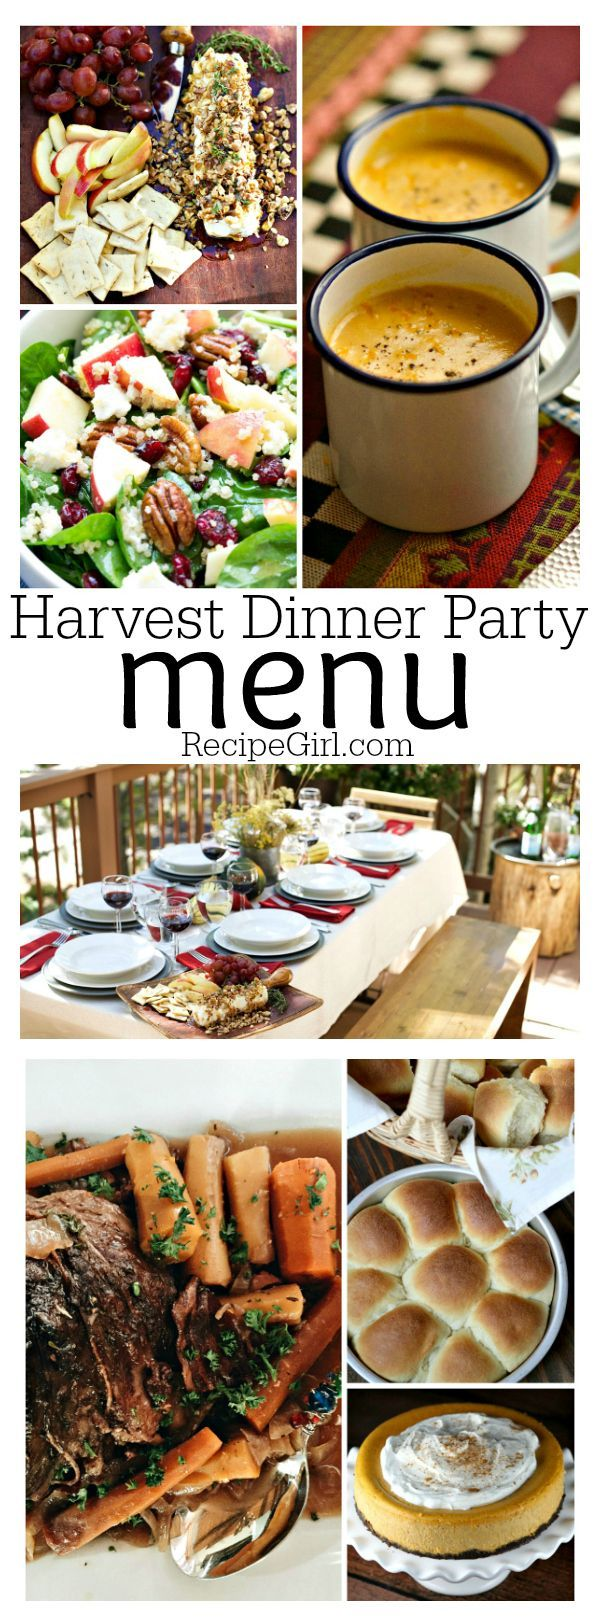 Superior Fall Dinner Party Menu Suggestions Part - 5: Harvest Dinner Party Menu - Recipe Girl